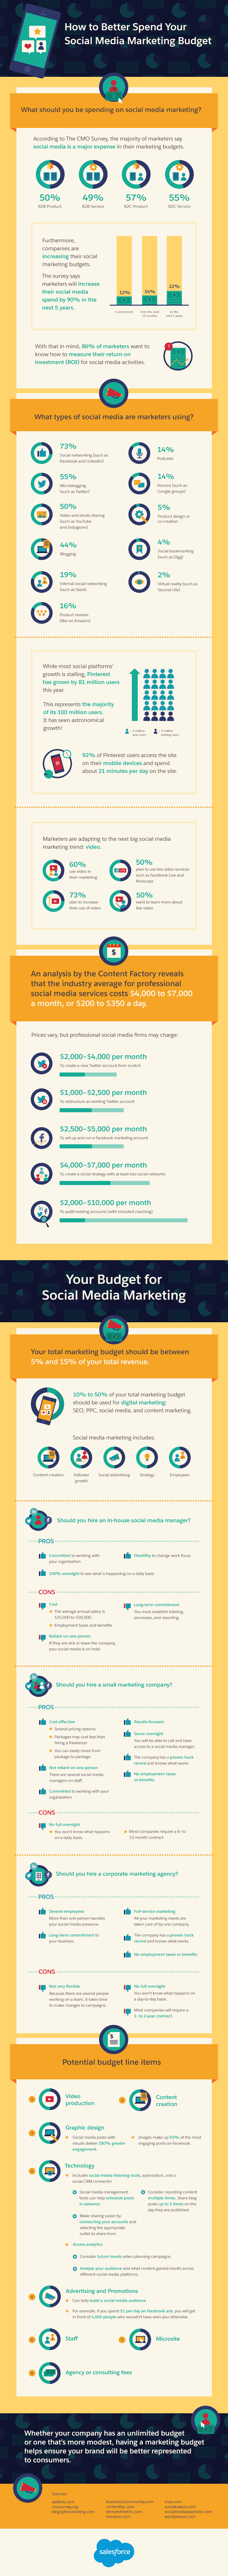 How to Better Spend Your Social Media Marketing Budget [Infographic]   Social Media Today